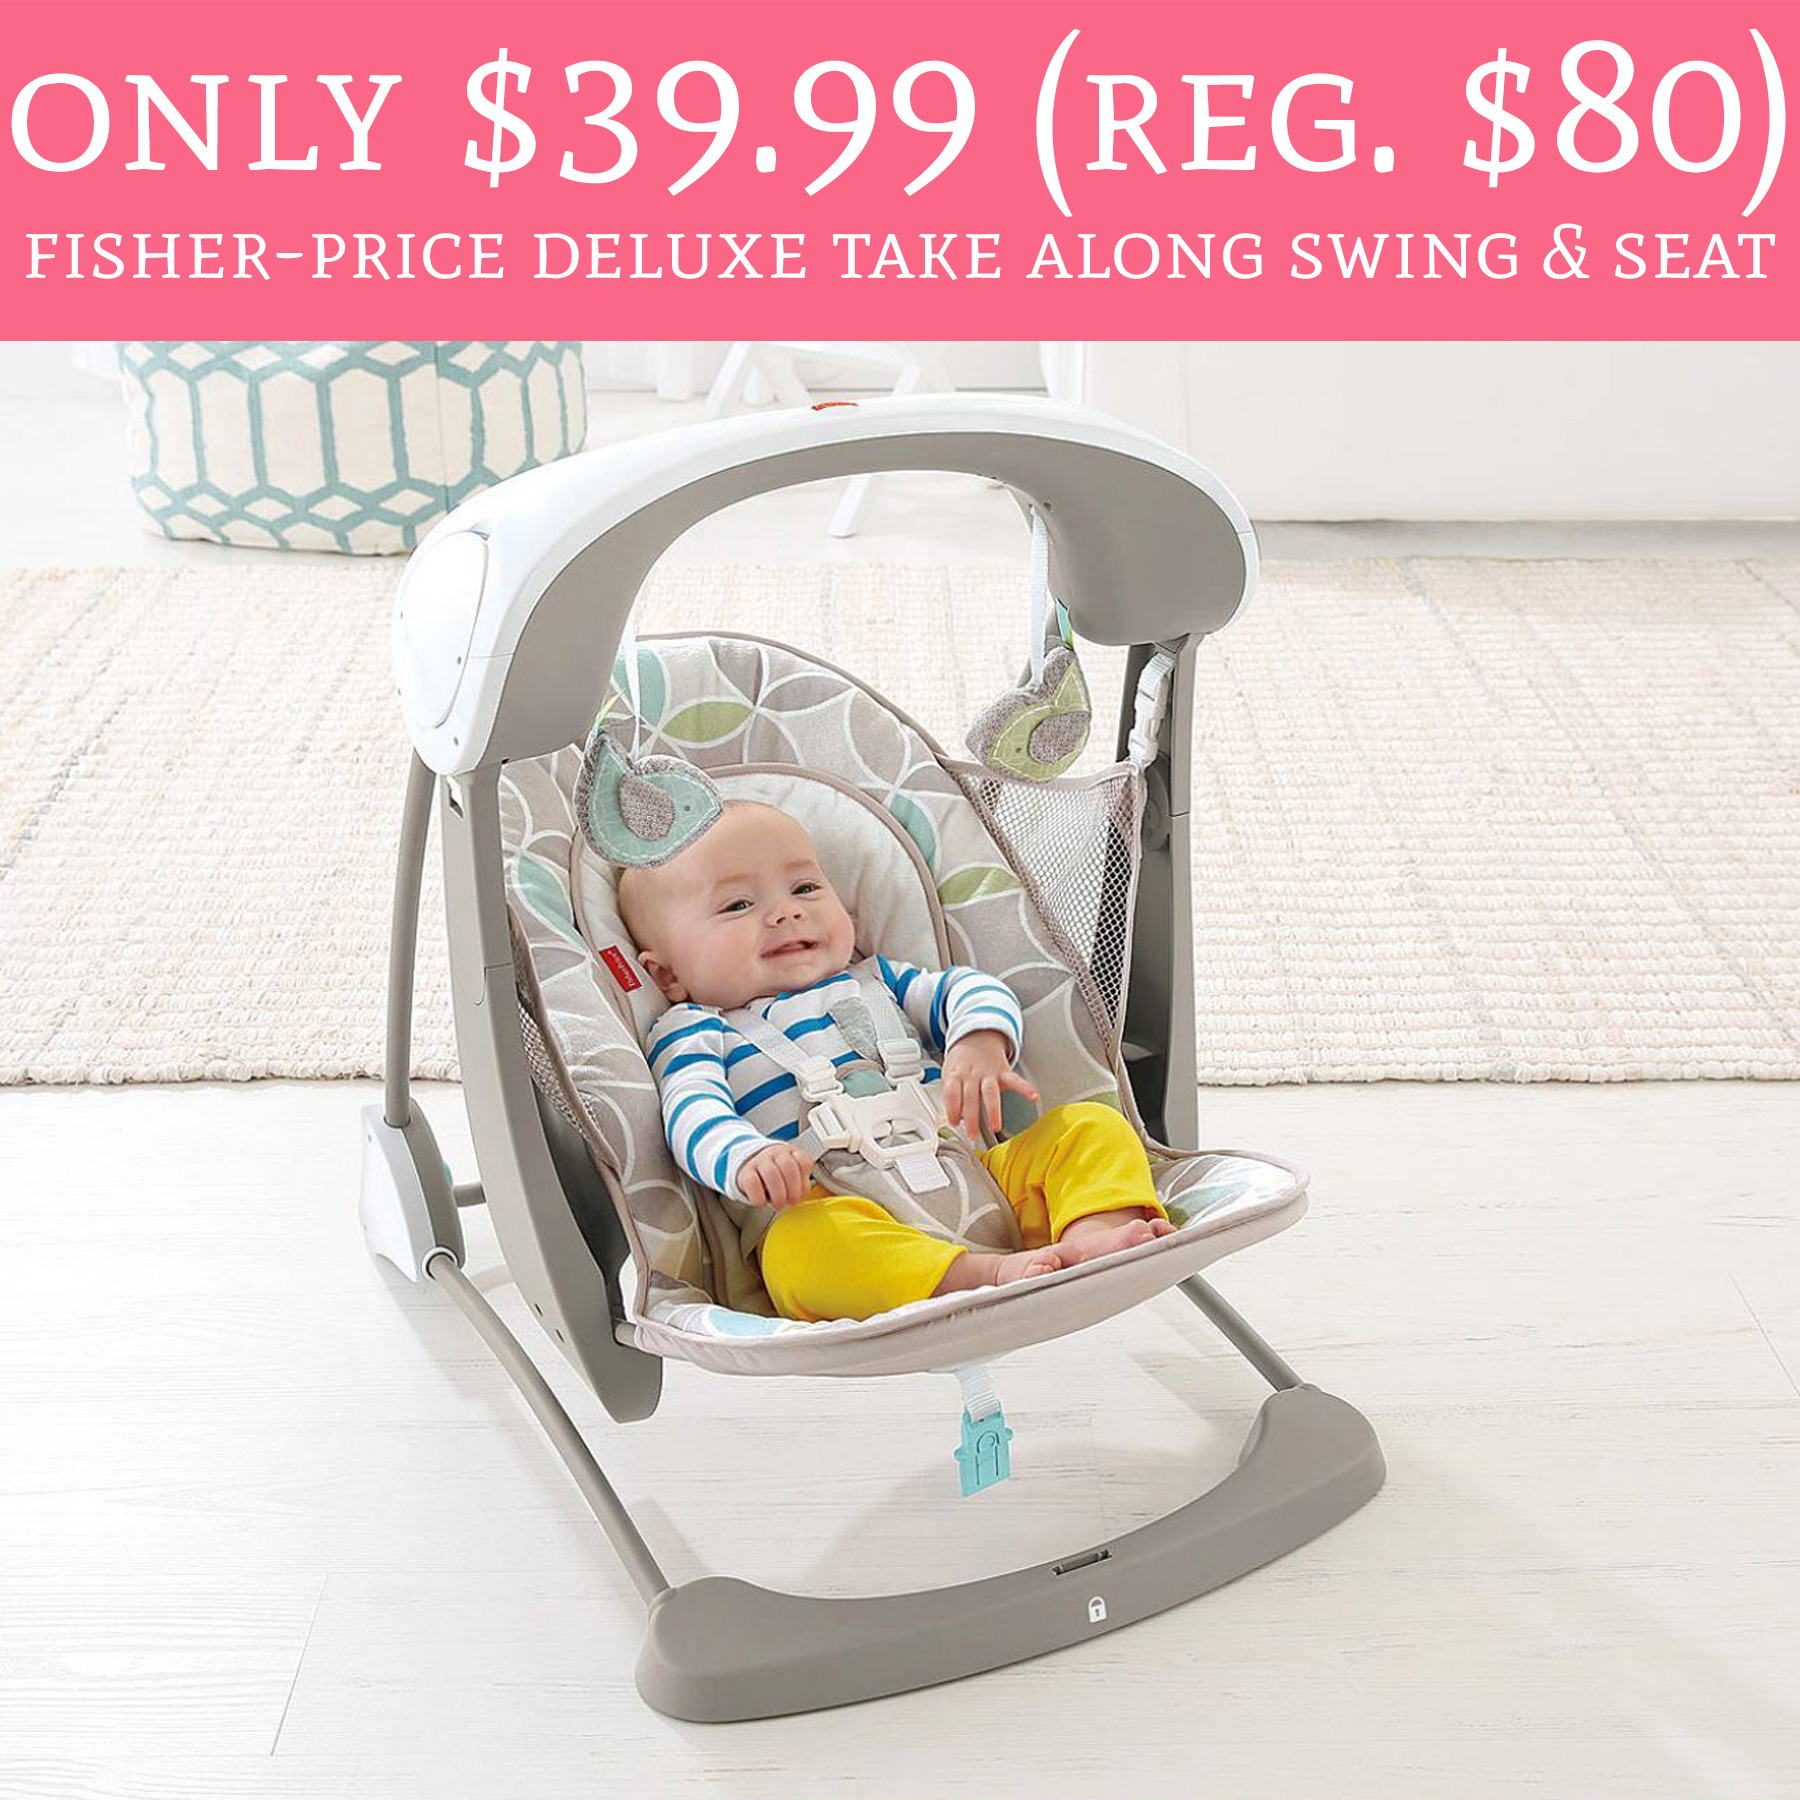 HOT ly $39 99 Regular $80 Fisher Price Deluxe Take Along